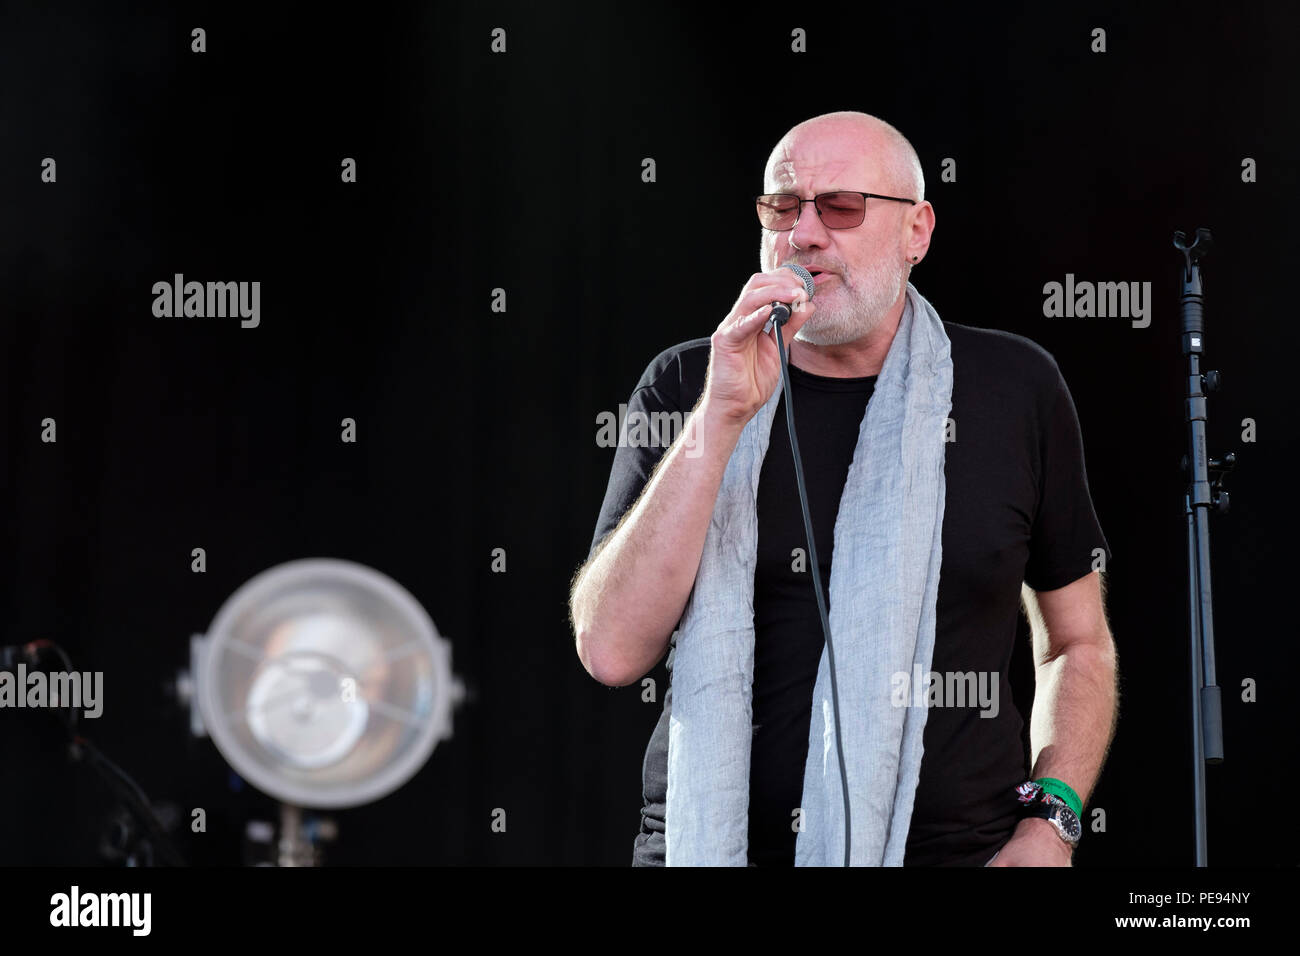 Fish performing at Fairport's Cropredy Convention, England, UK. August 10, 2018 - Stock Image